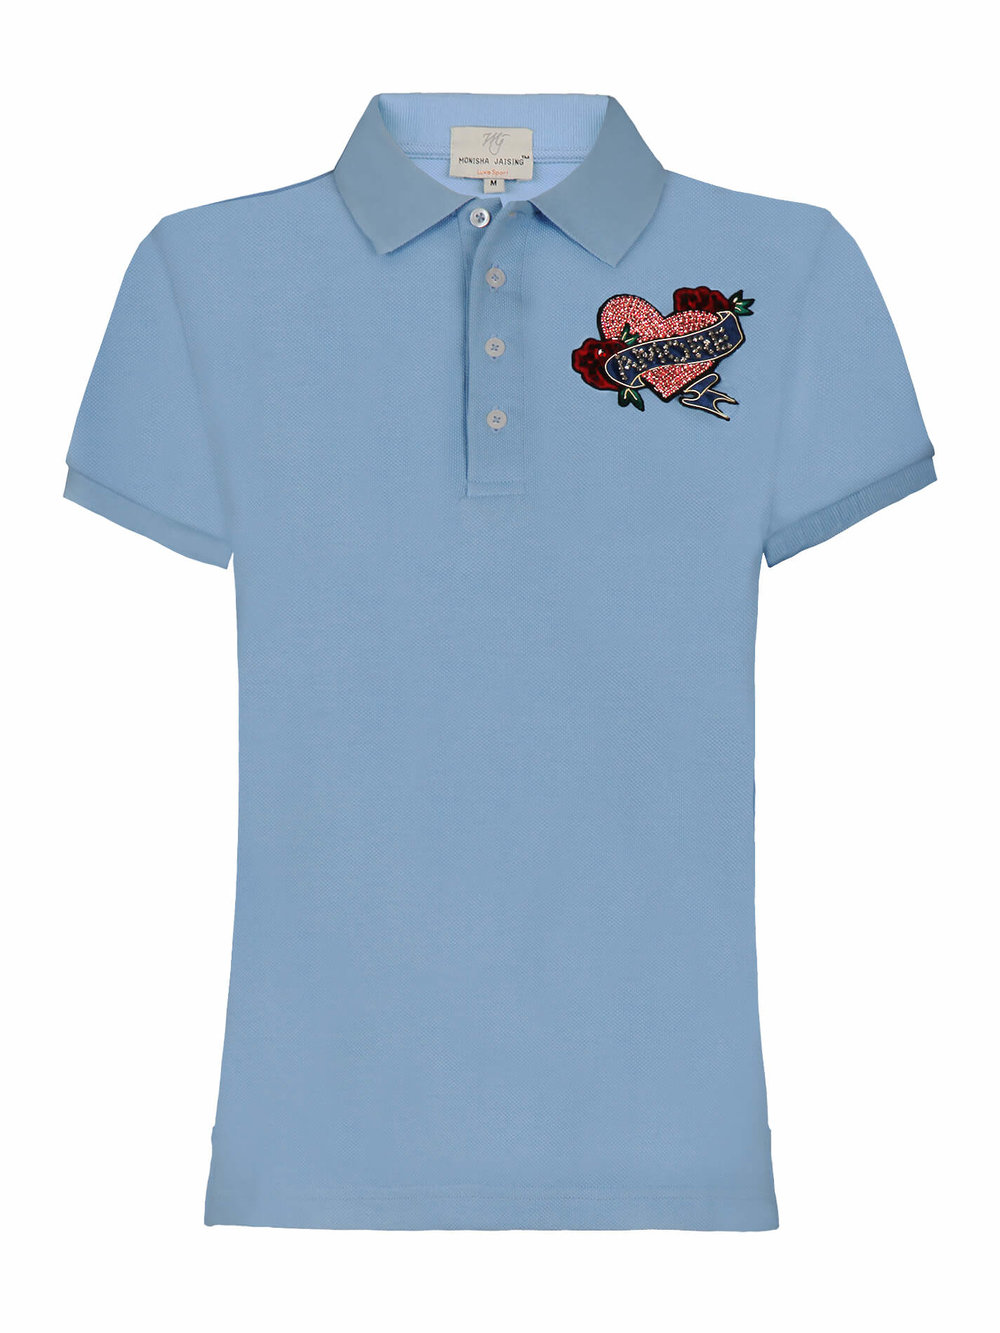 powder blue amore tshirt.jpg